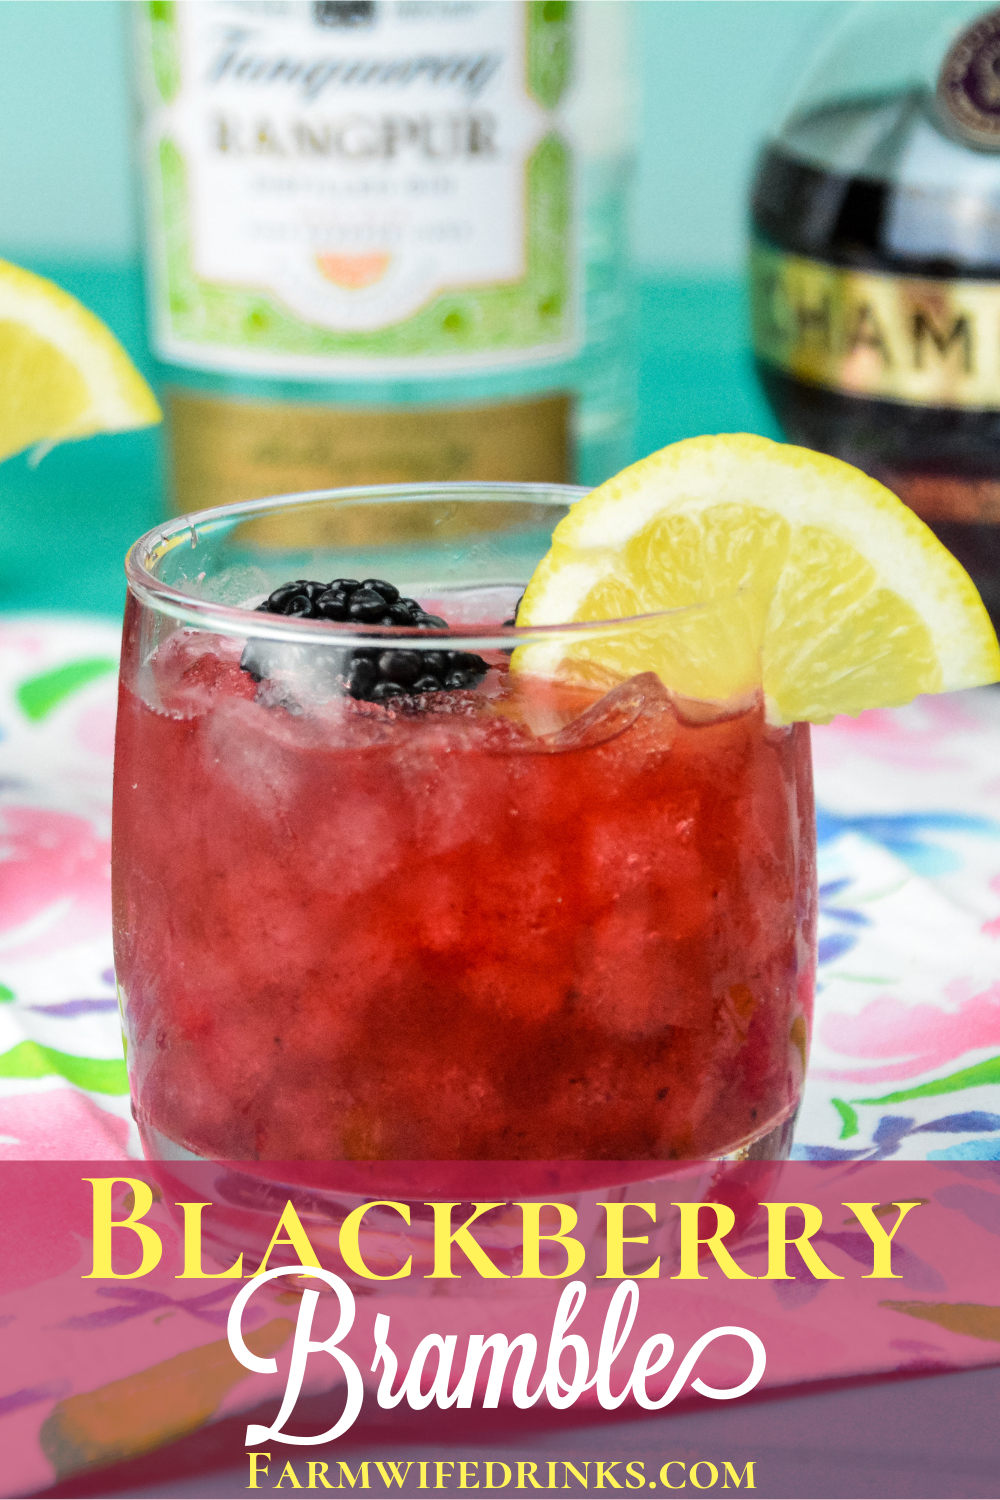 Blackberry Bramble Cocktail combines fresh lemon juice with muddled blackberries and marries perfectly with gin and Chambord for a perfect summer cocktail.